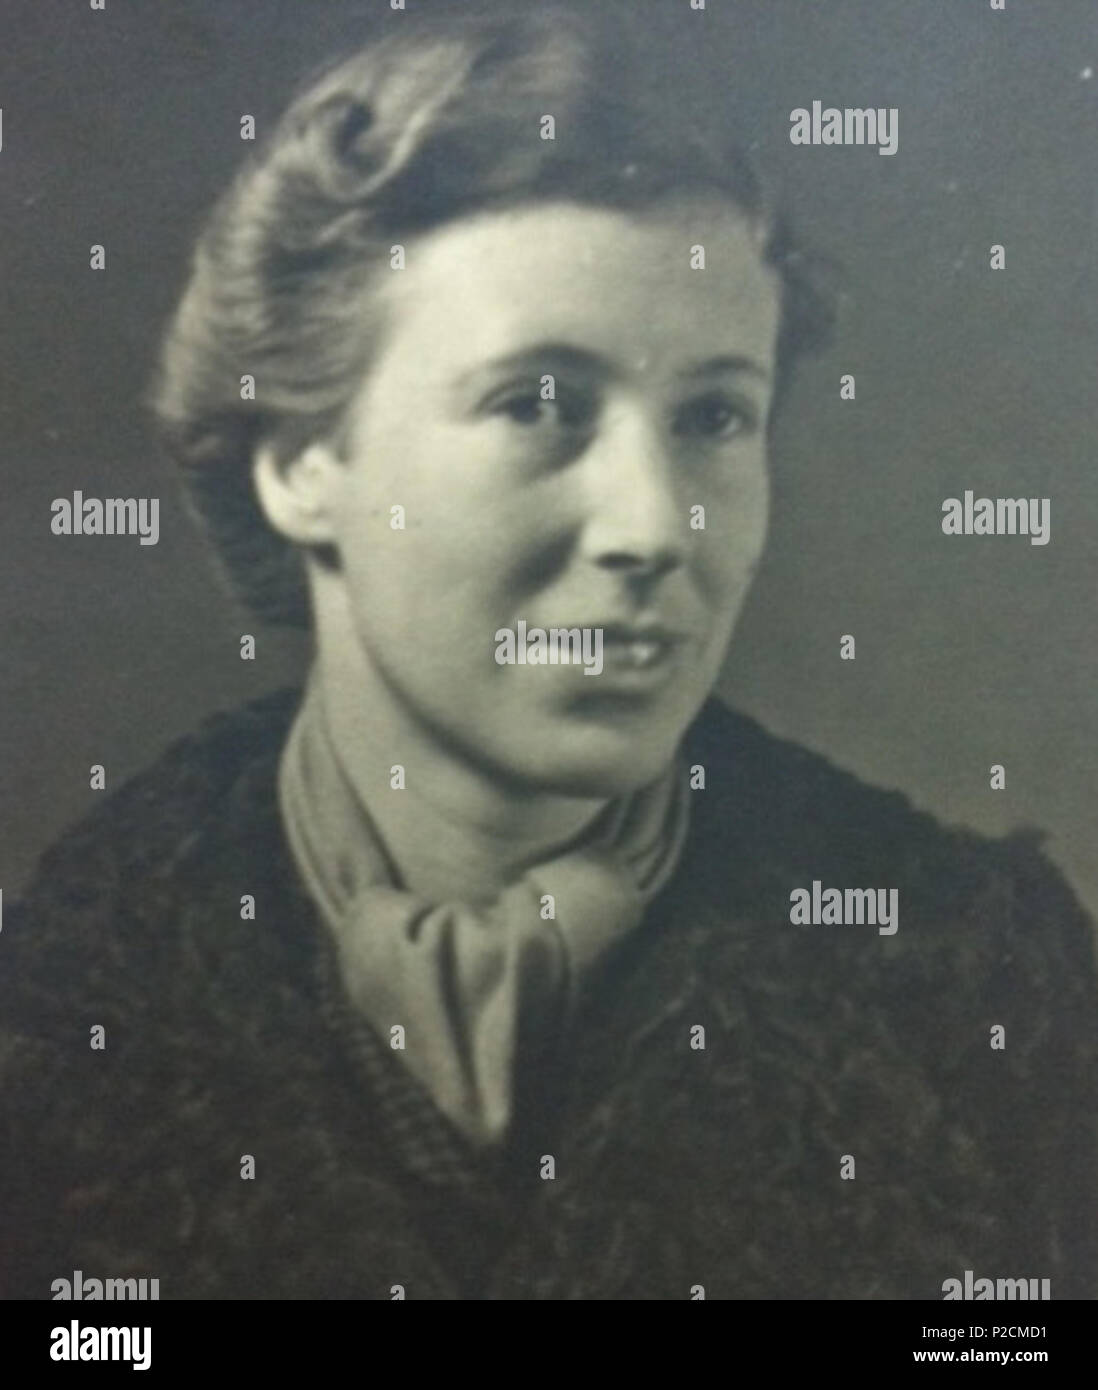 . Alice von Platen .  English: This is a portrait of Alice Ricciardi-von Platen in her late twenties. . circa 1939 3 Alice von Platen in 1939 original - Stock Image